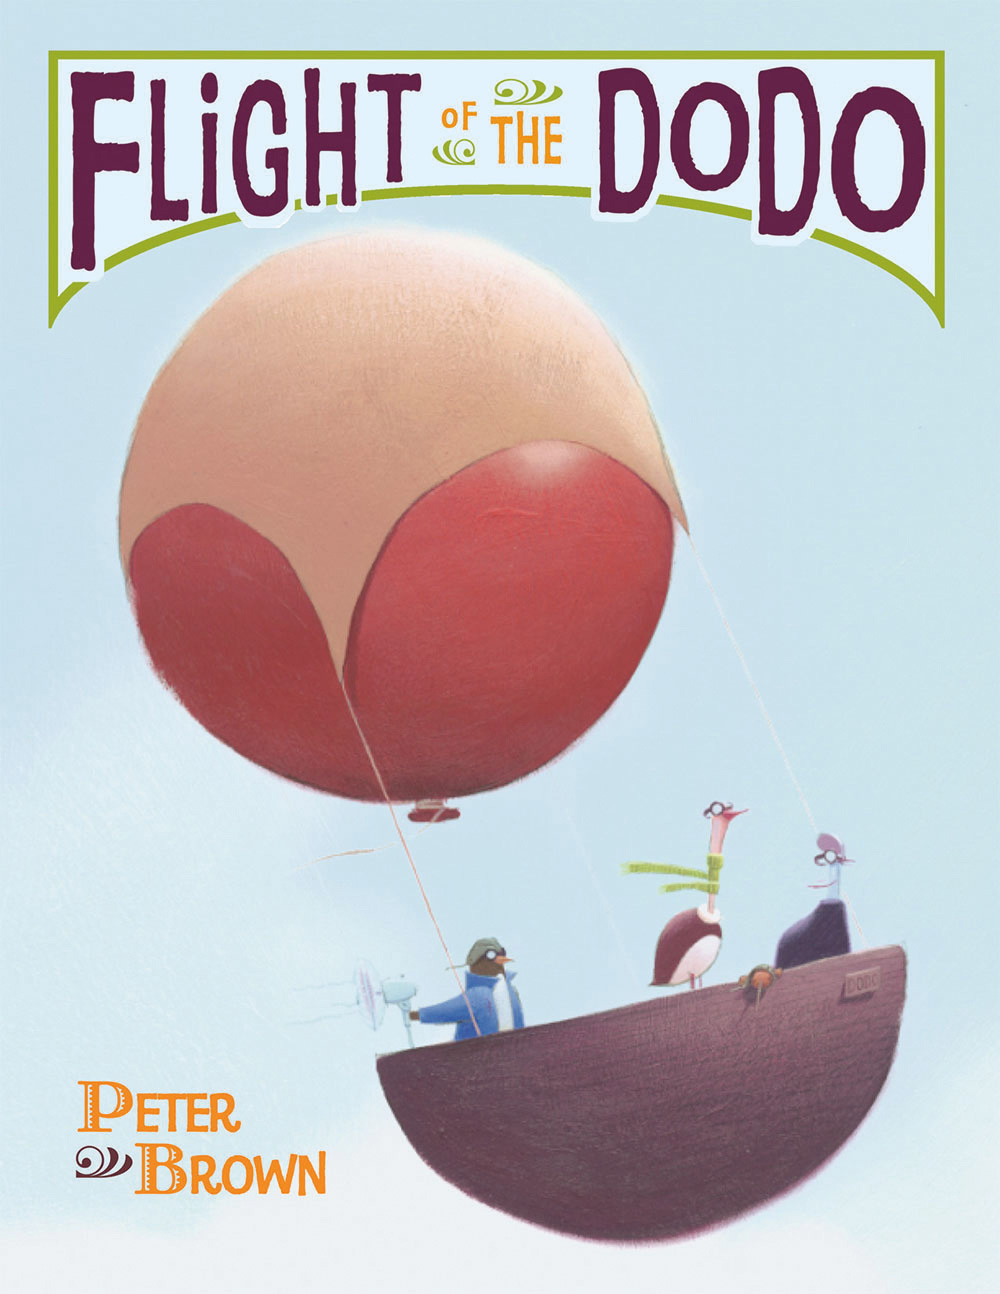 Brown, Peter 2005_10 - FLIGHT OF THE DODO - PB - RLM PR.jpg